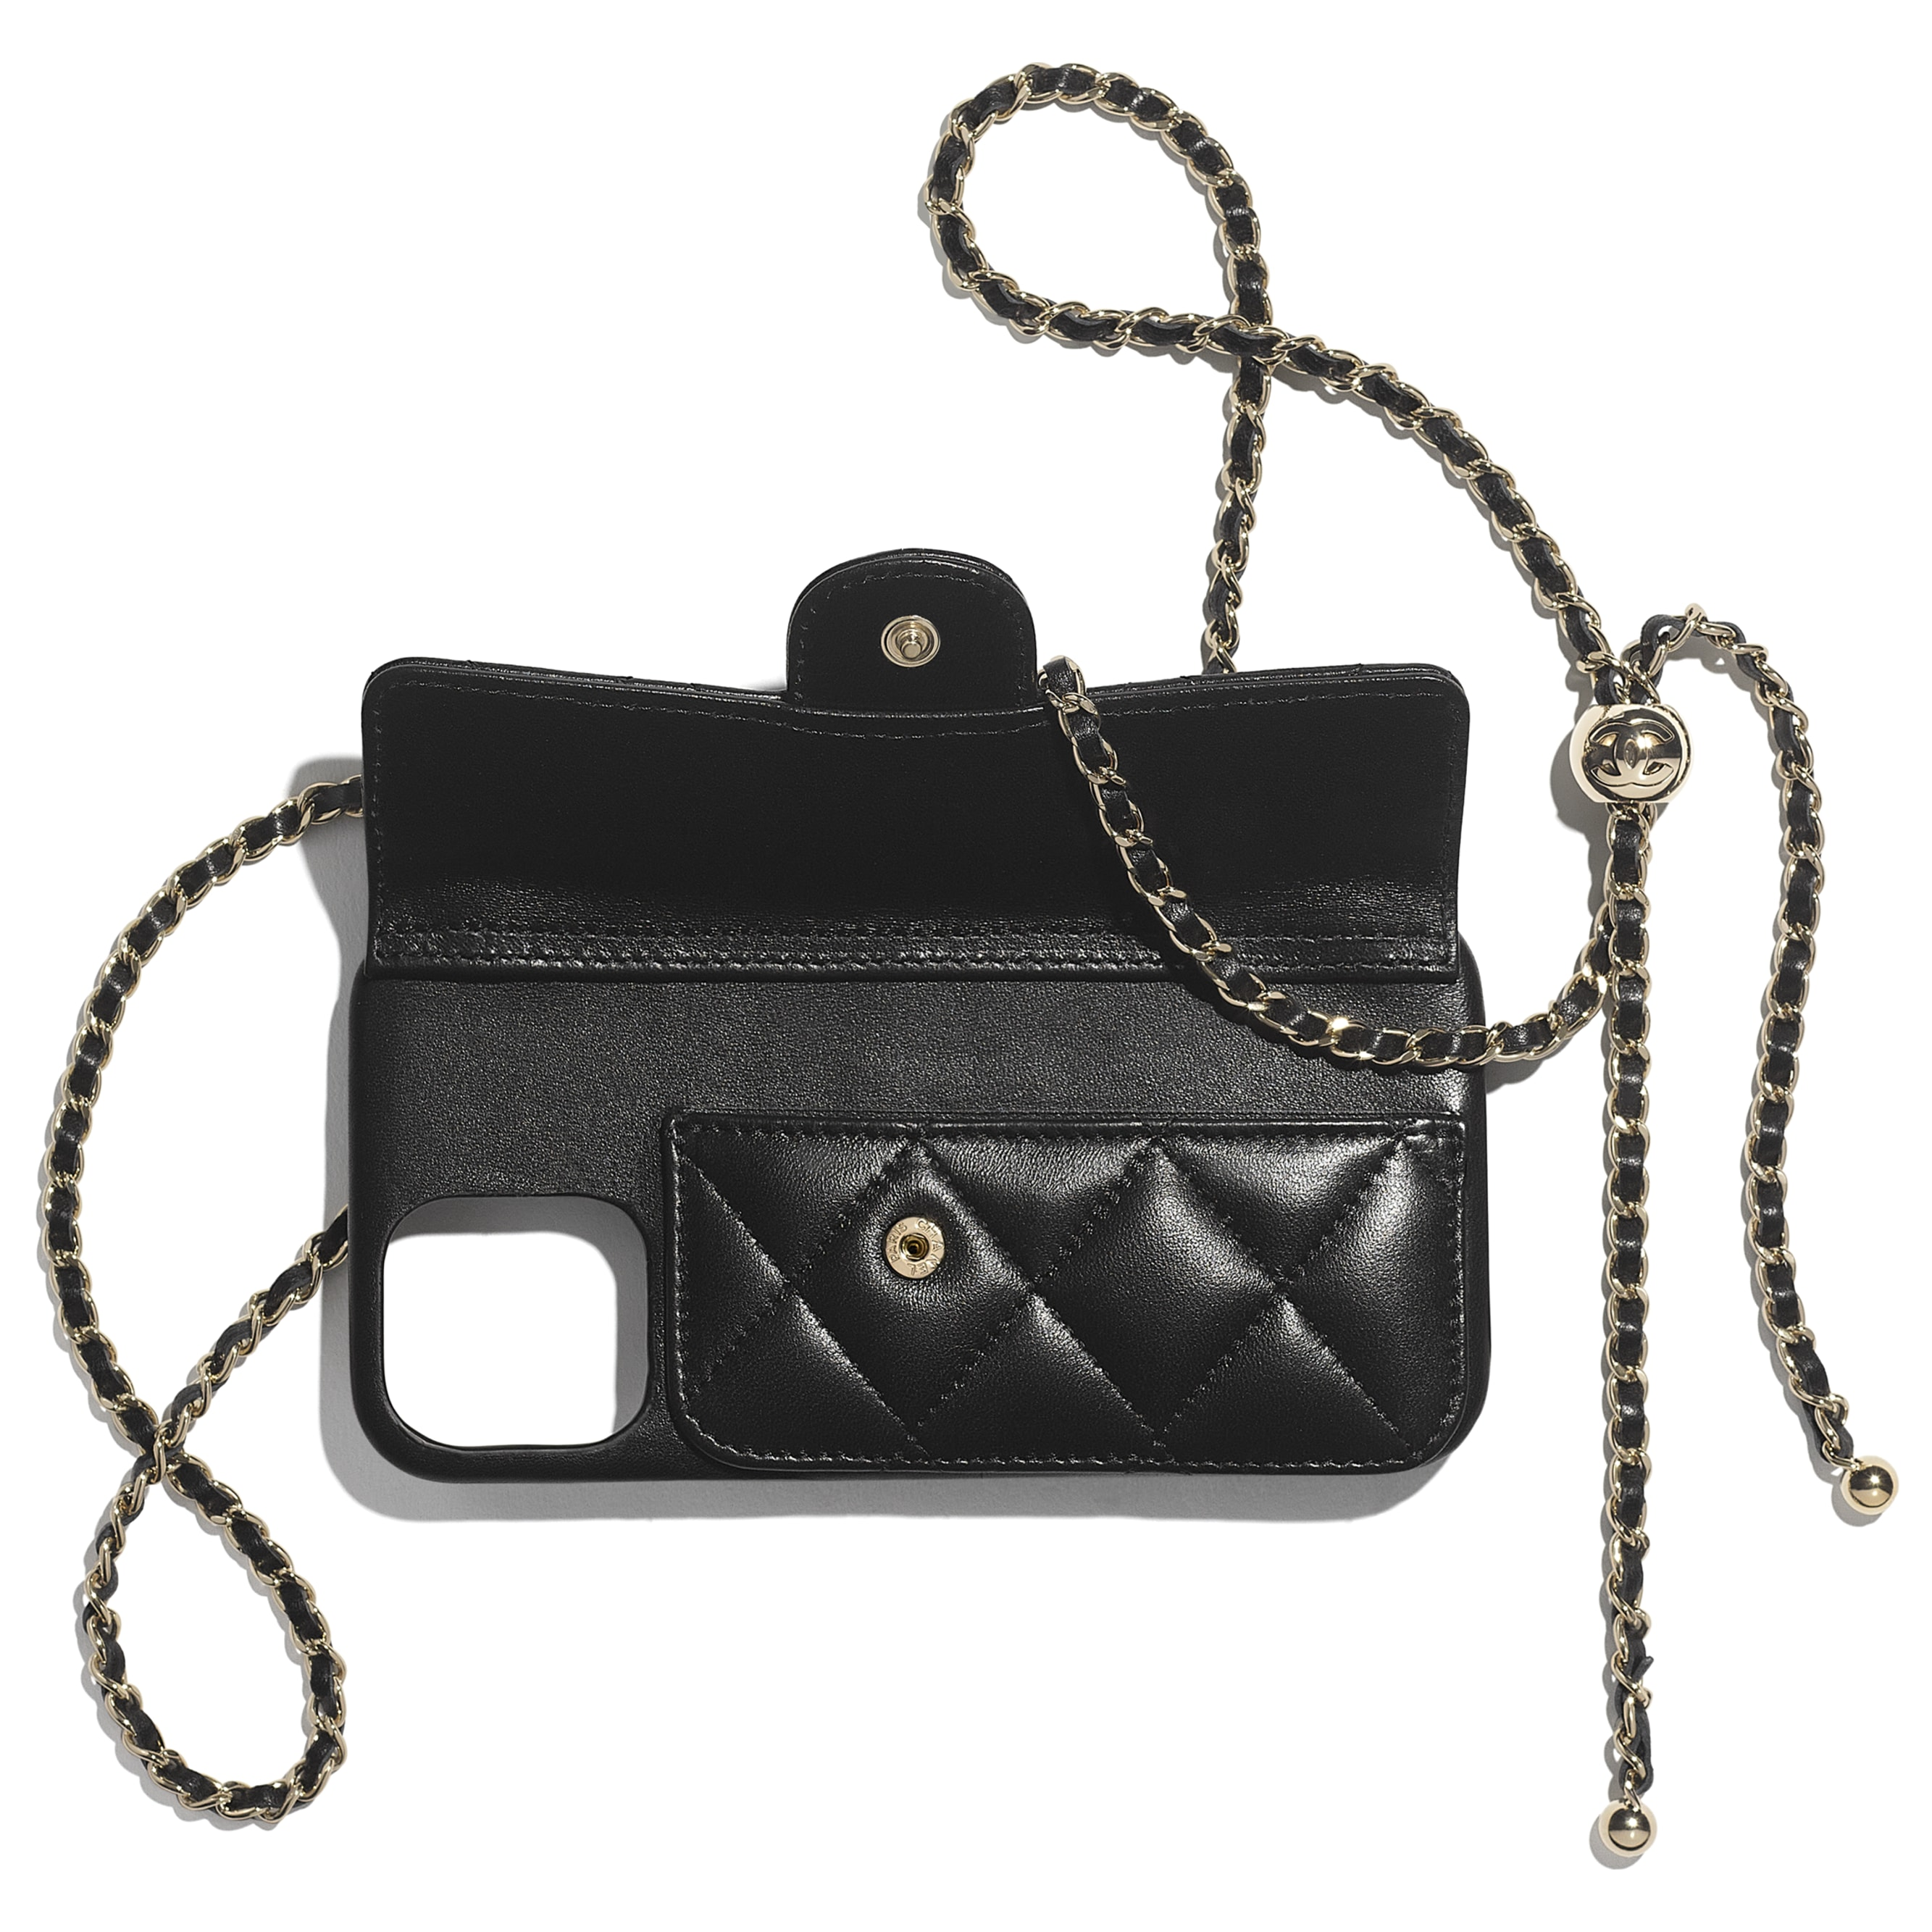 Classic Case for iPhone XII Pro MAX with chain - Black - Lambskin - CHANEL - Alternative view - see standard sized version